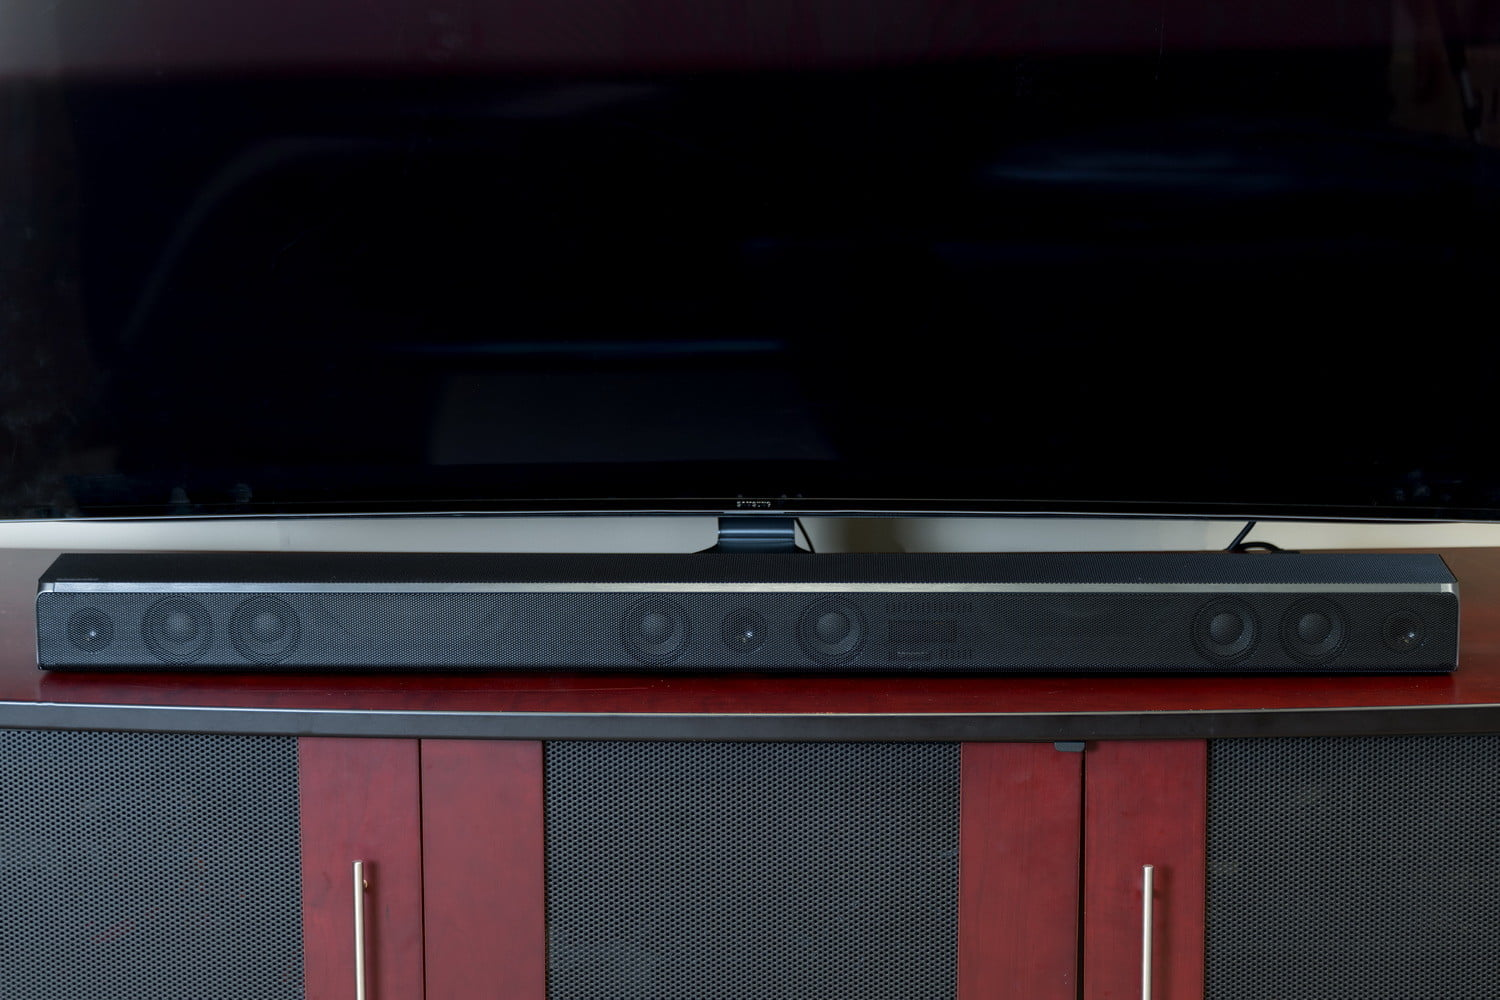 Tv Speaker Buying Guide Everything You Need To Know Digital Trends Wiring Outdoor Speakers With Volume Control A Soundbar Is The Most Common Type Of Supplementary Sound Solution Soundbars Are Easiest Devices Connect Your Because They Require Very Few